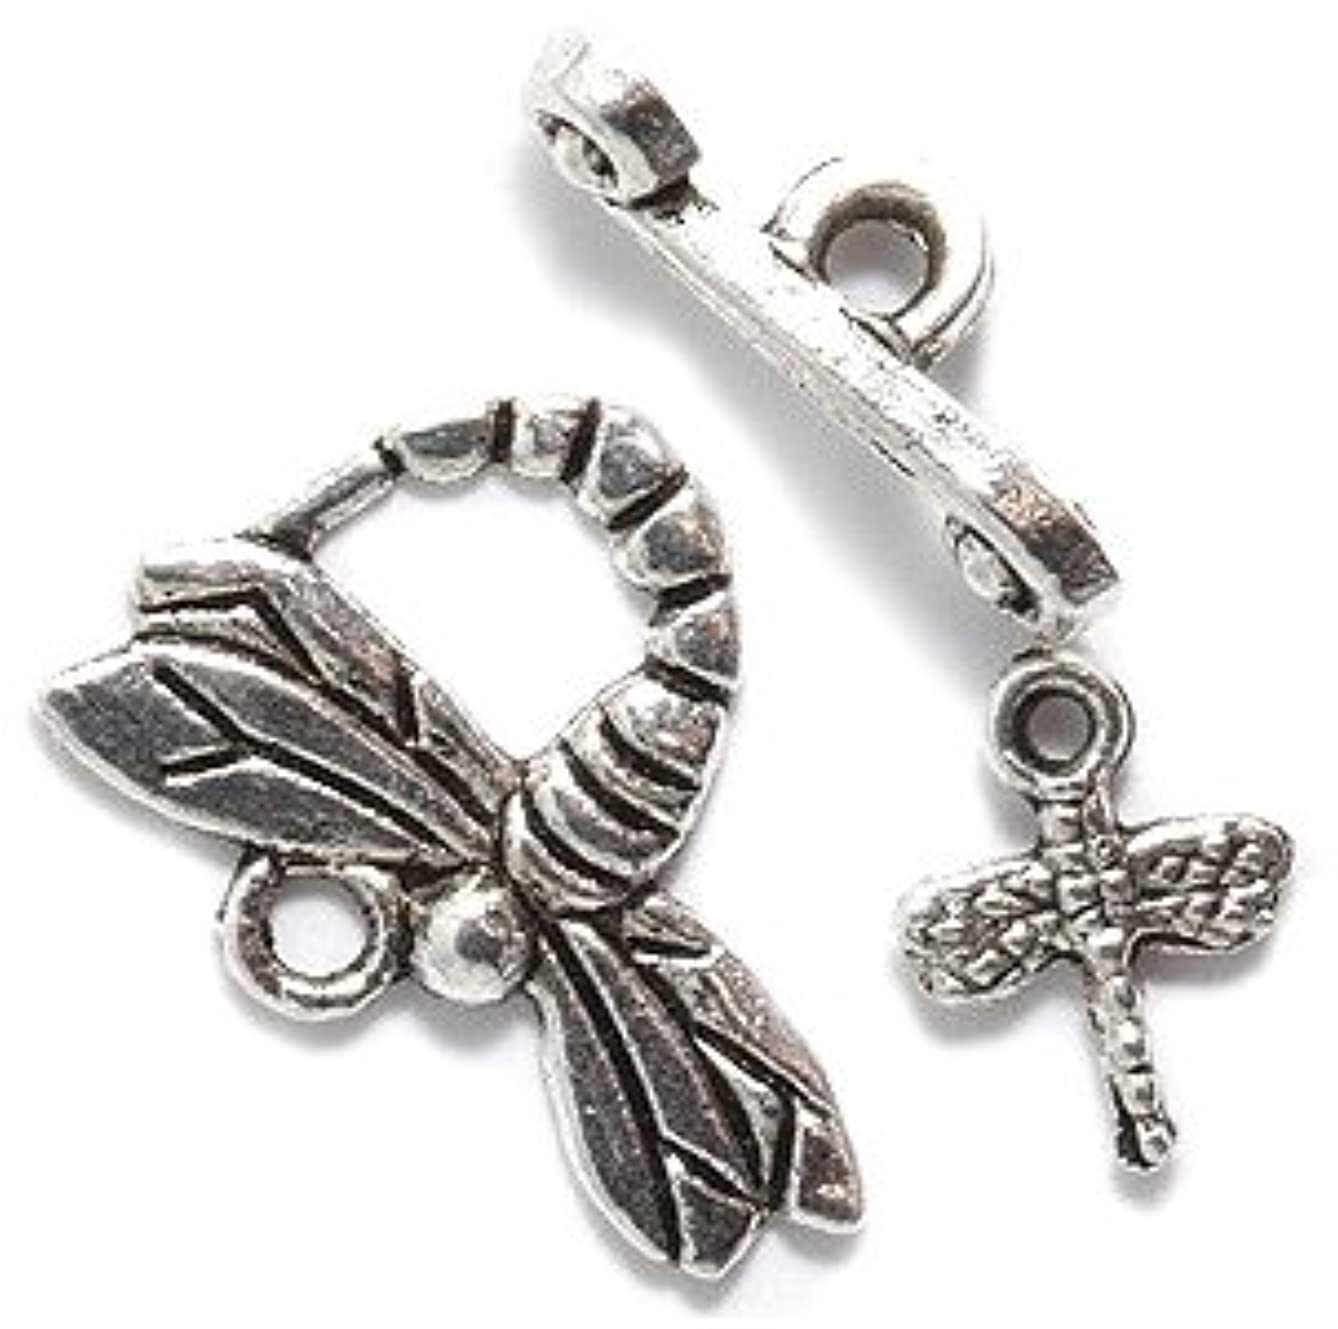 Shipwreck Beads Zinc Alloy Toggle Clasp with Charm, Dragonfly, 20mm, Silver, 15-Pack